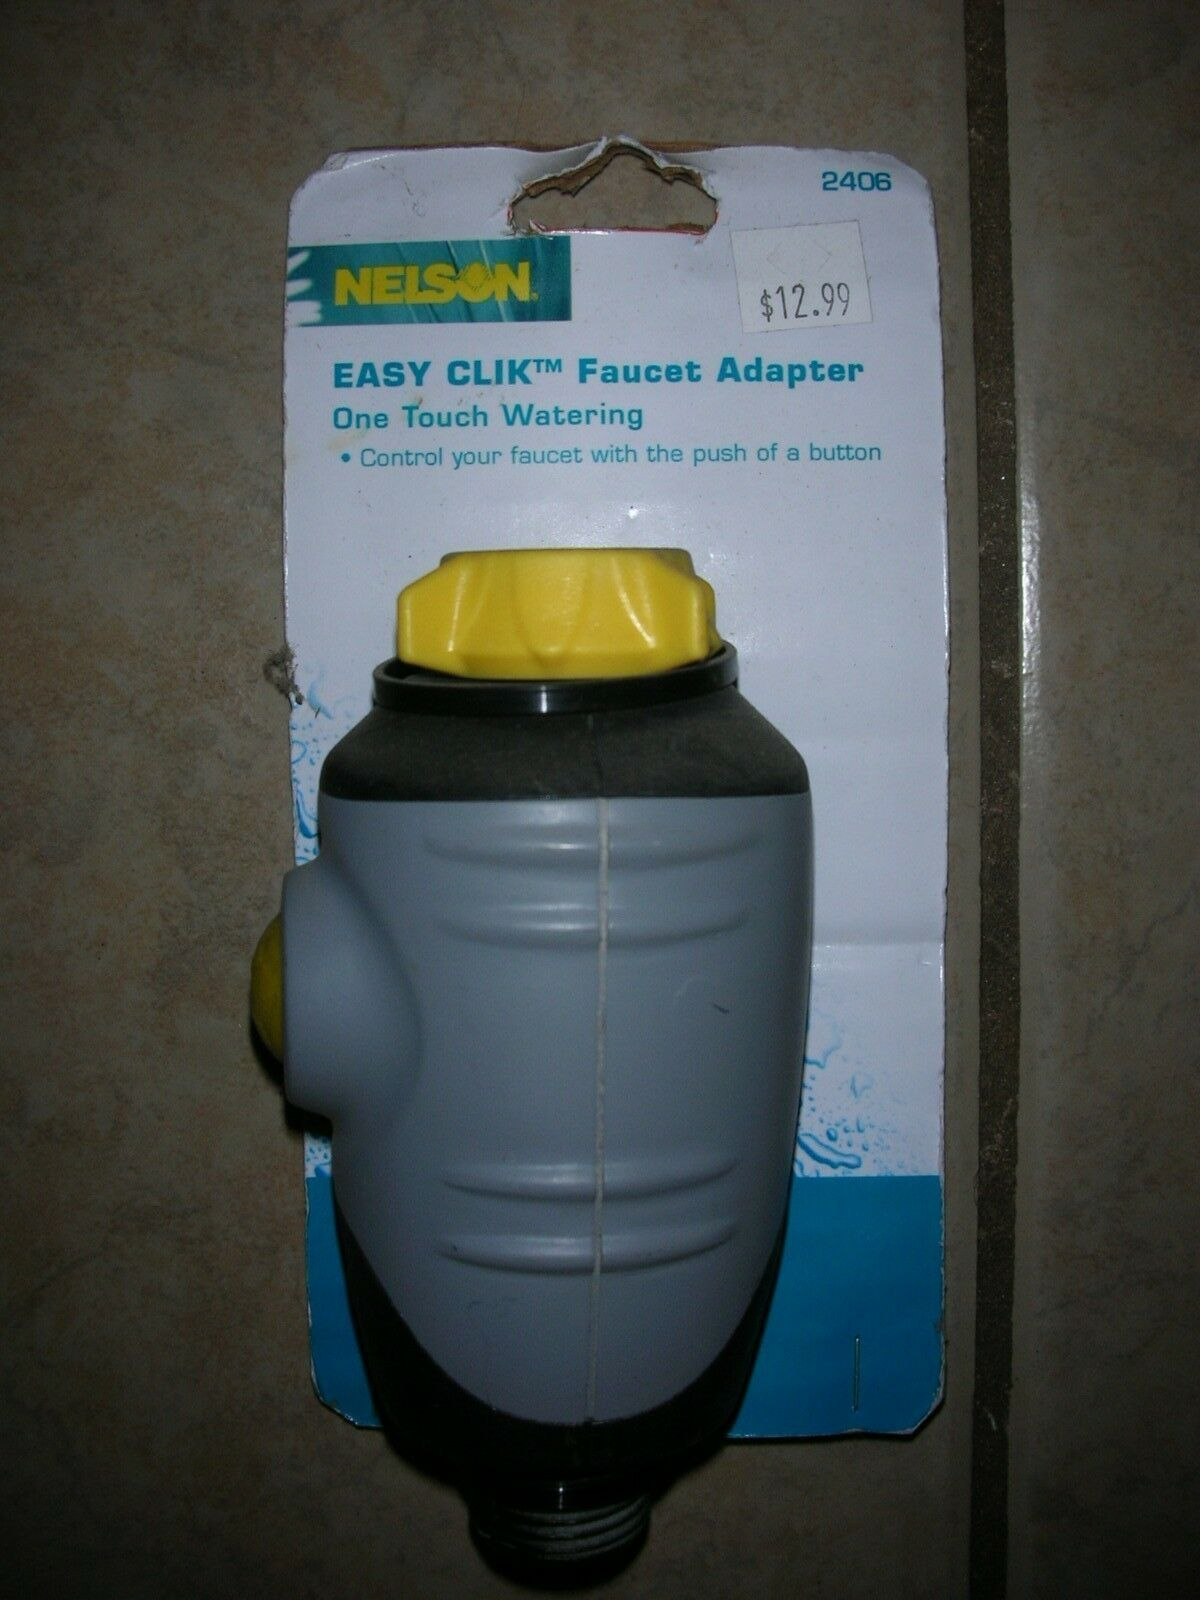 Nelson Easy Clik Faucet Adapter - One Touch Watering -#2406 (B 34)